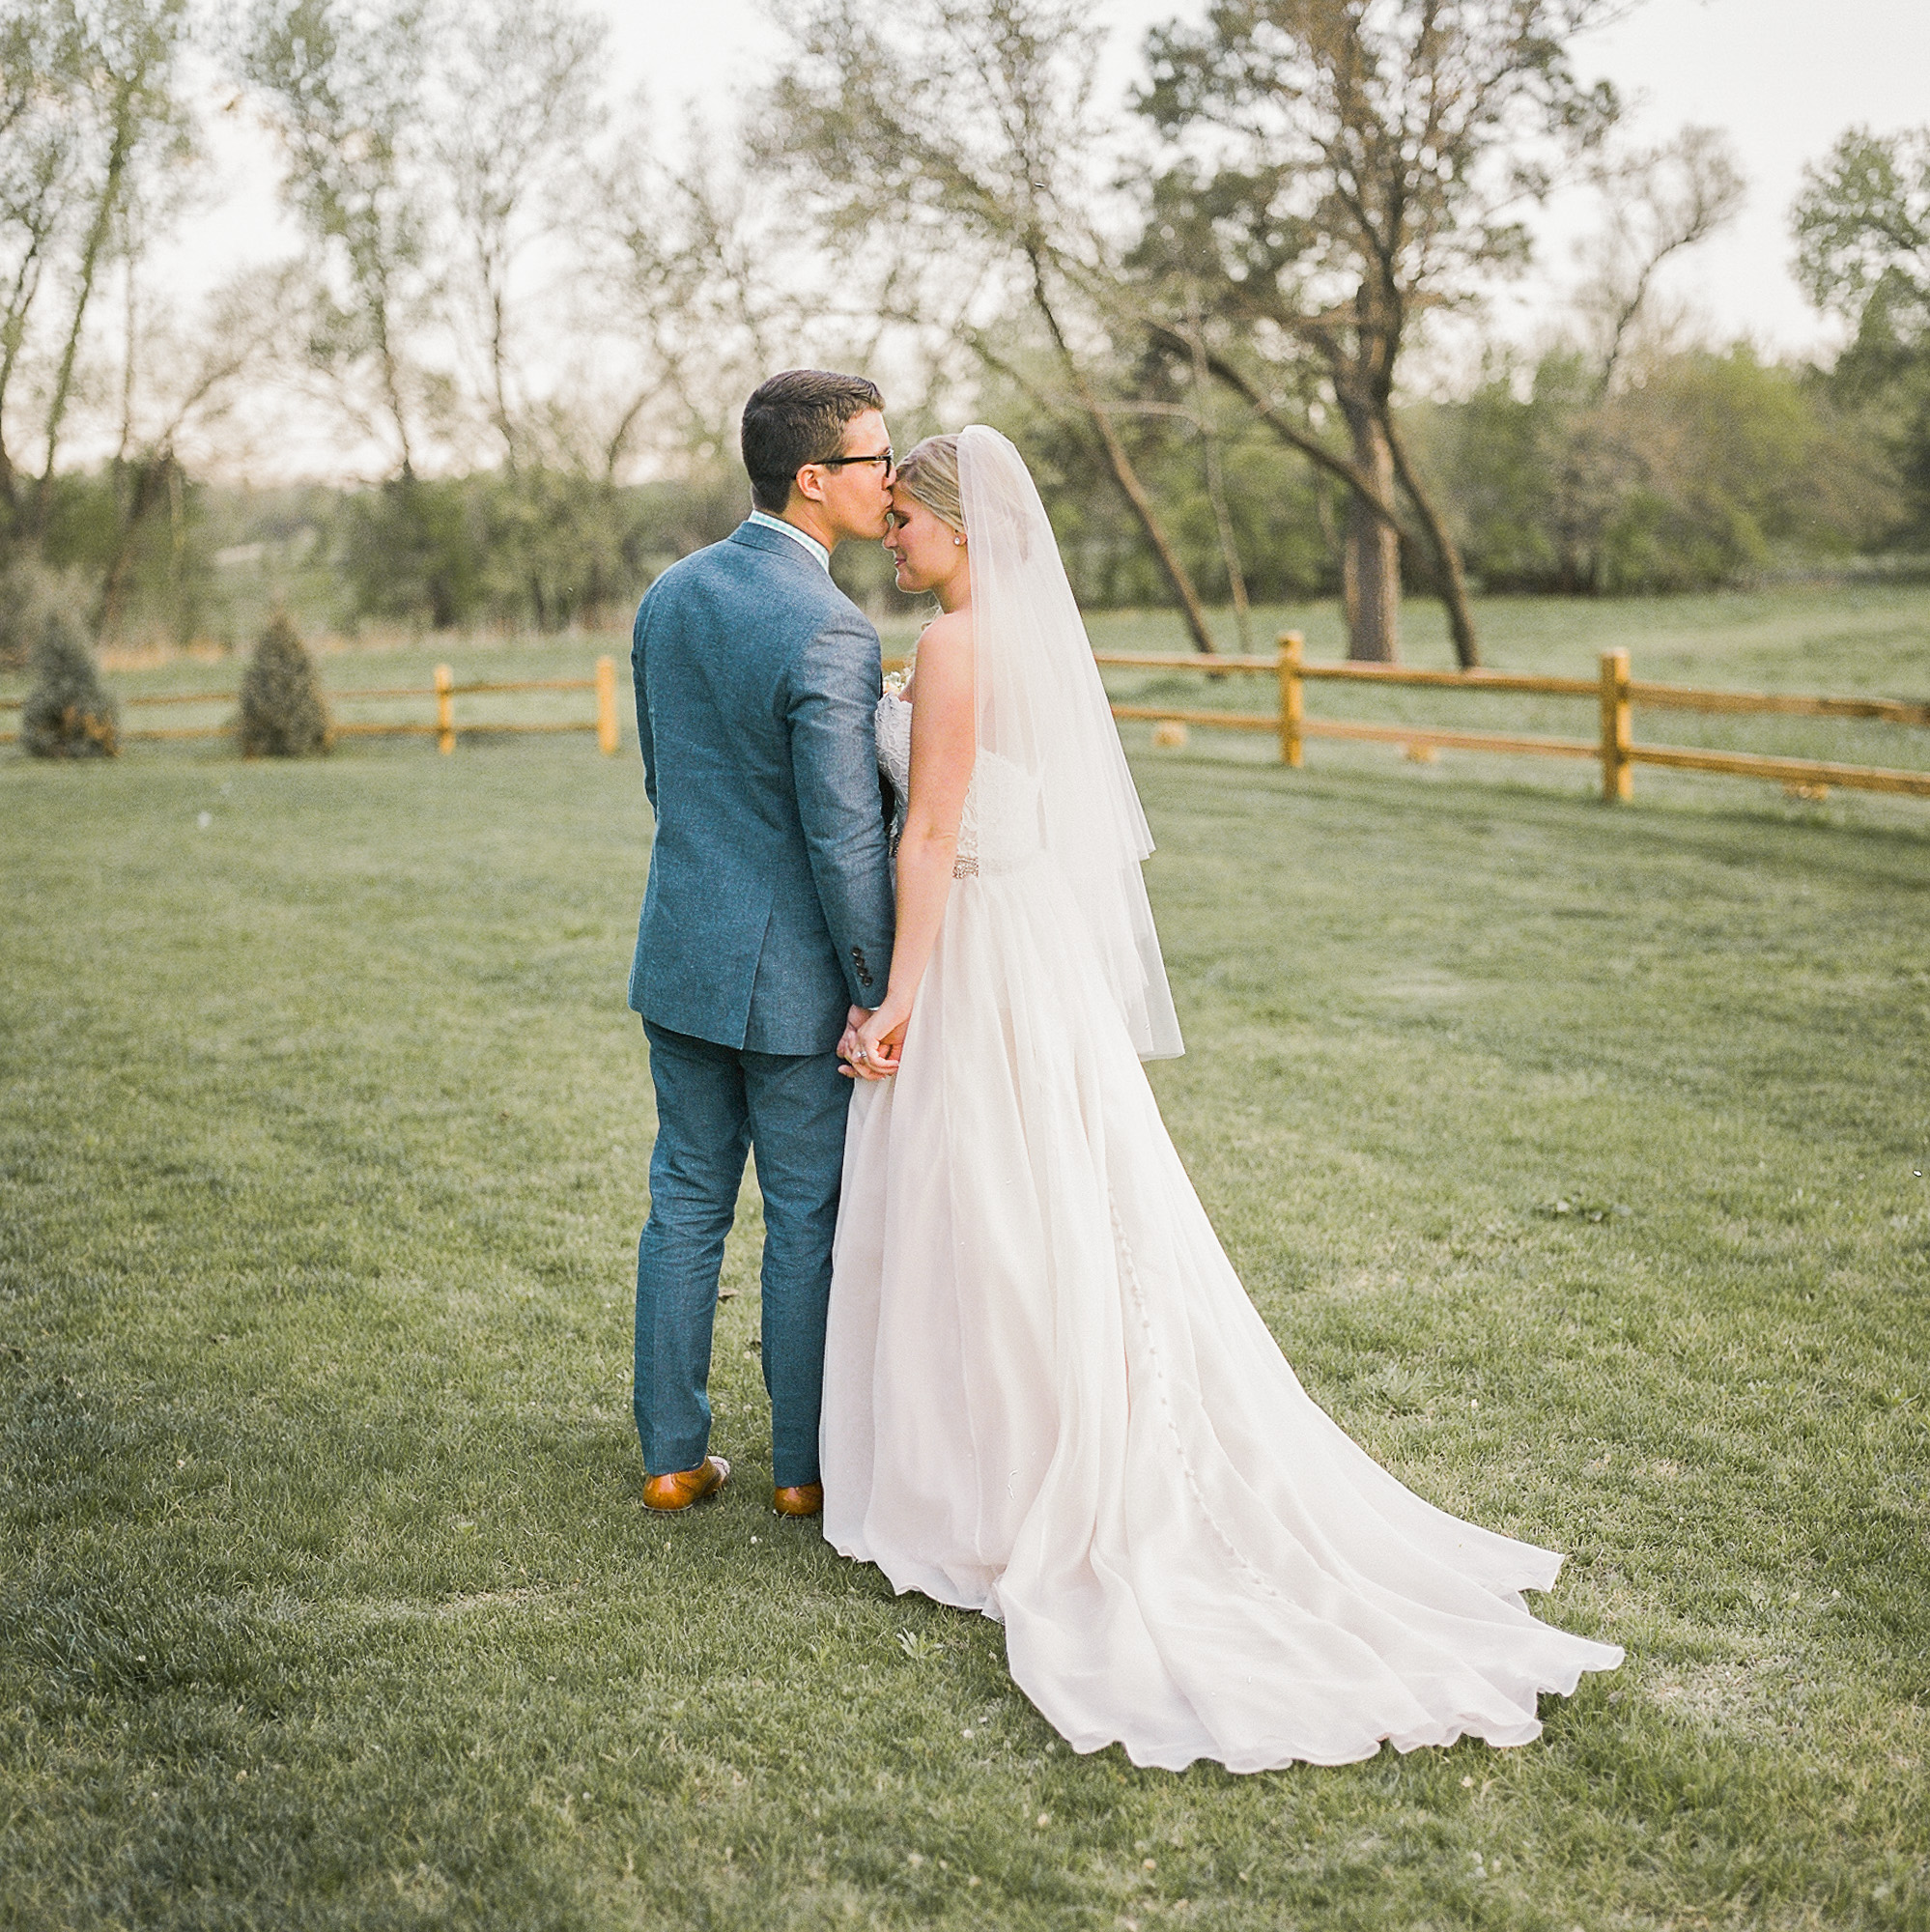 Chisolm_Springs_Wedding_OKC_Film_photographer-17.jpg